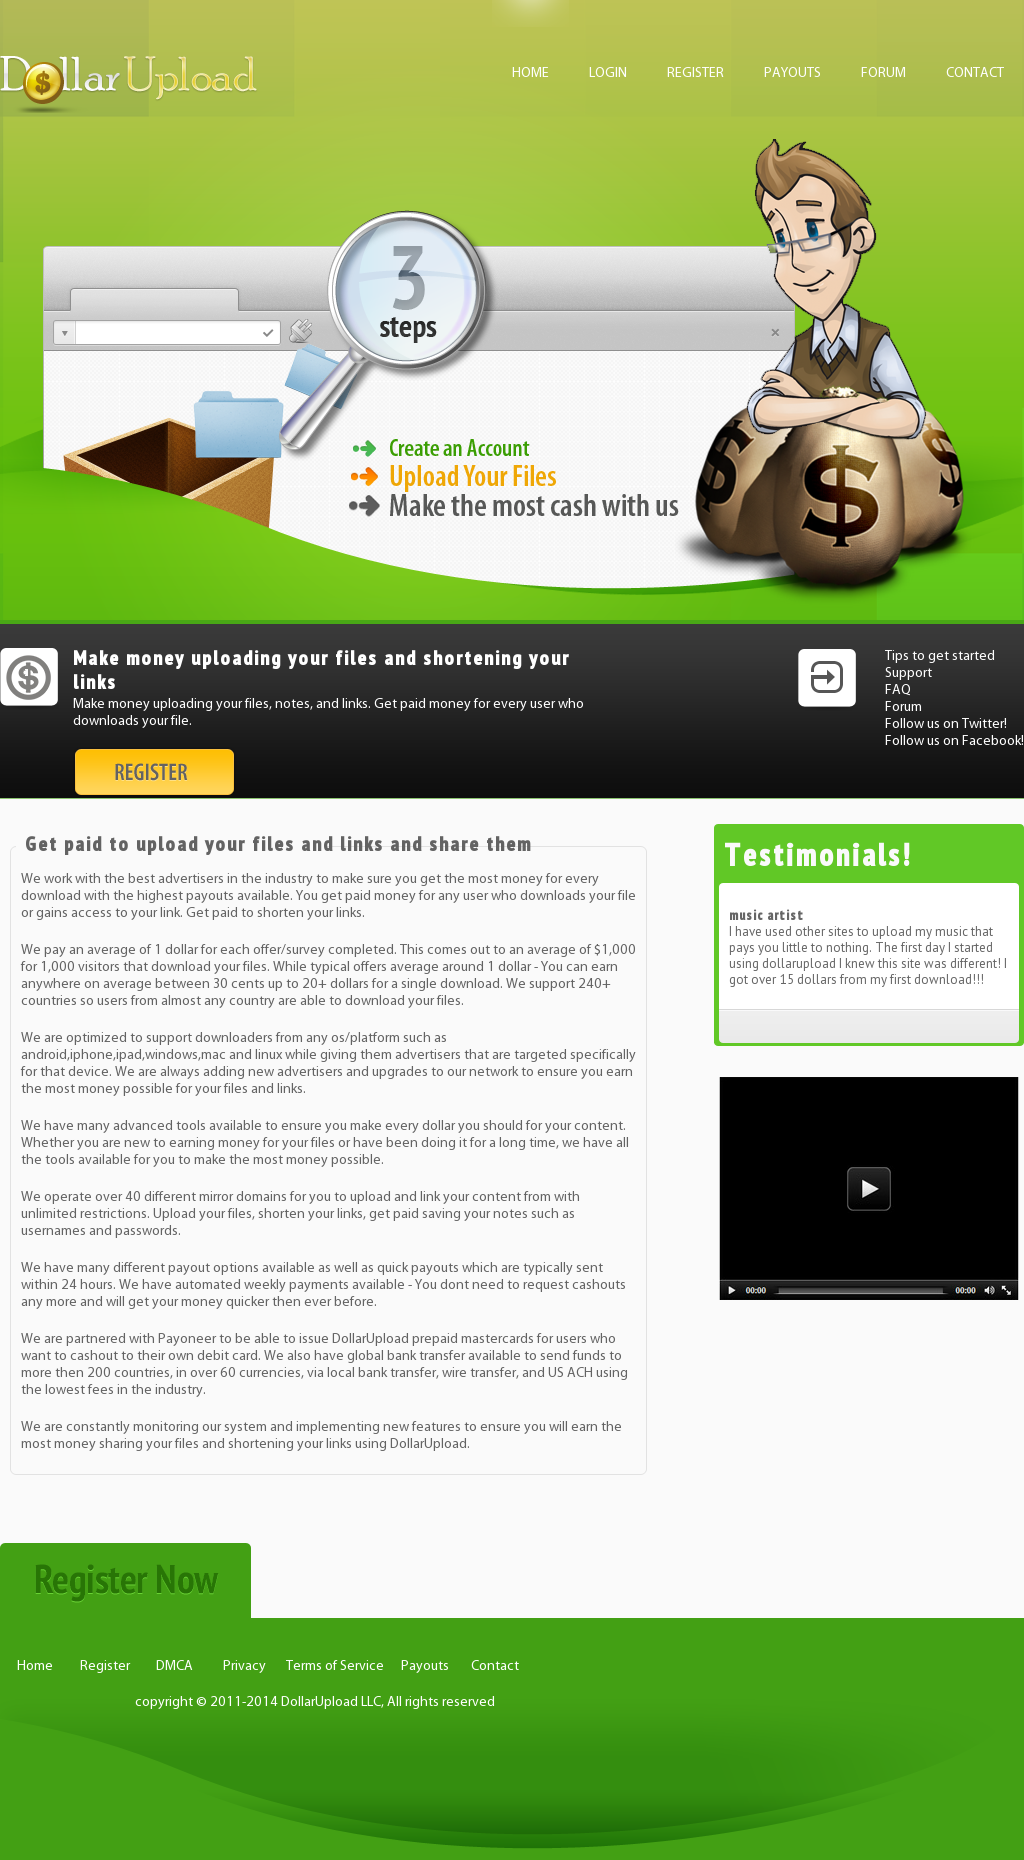 Owler Reports - DollarUpload Blog Get paid to share links